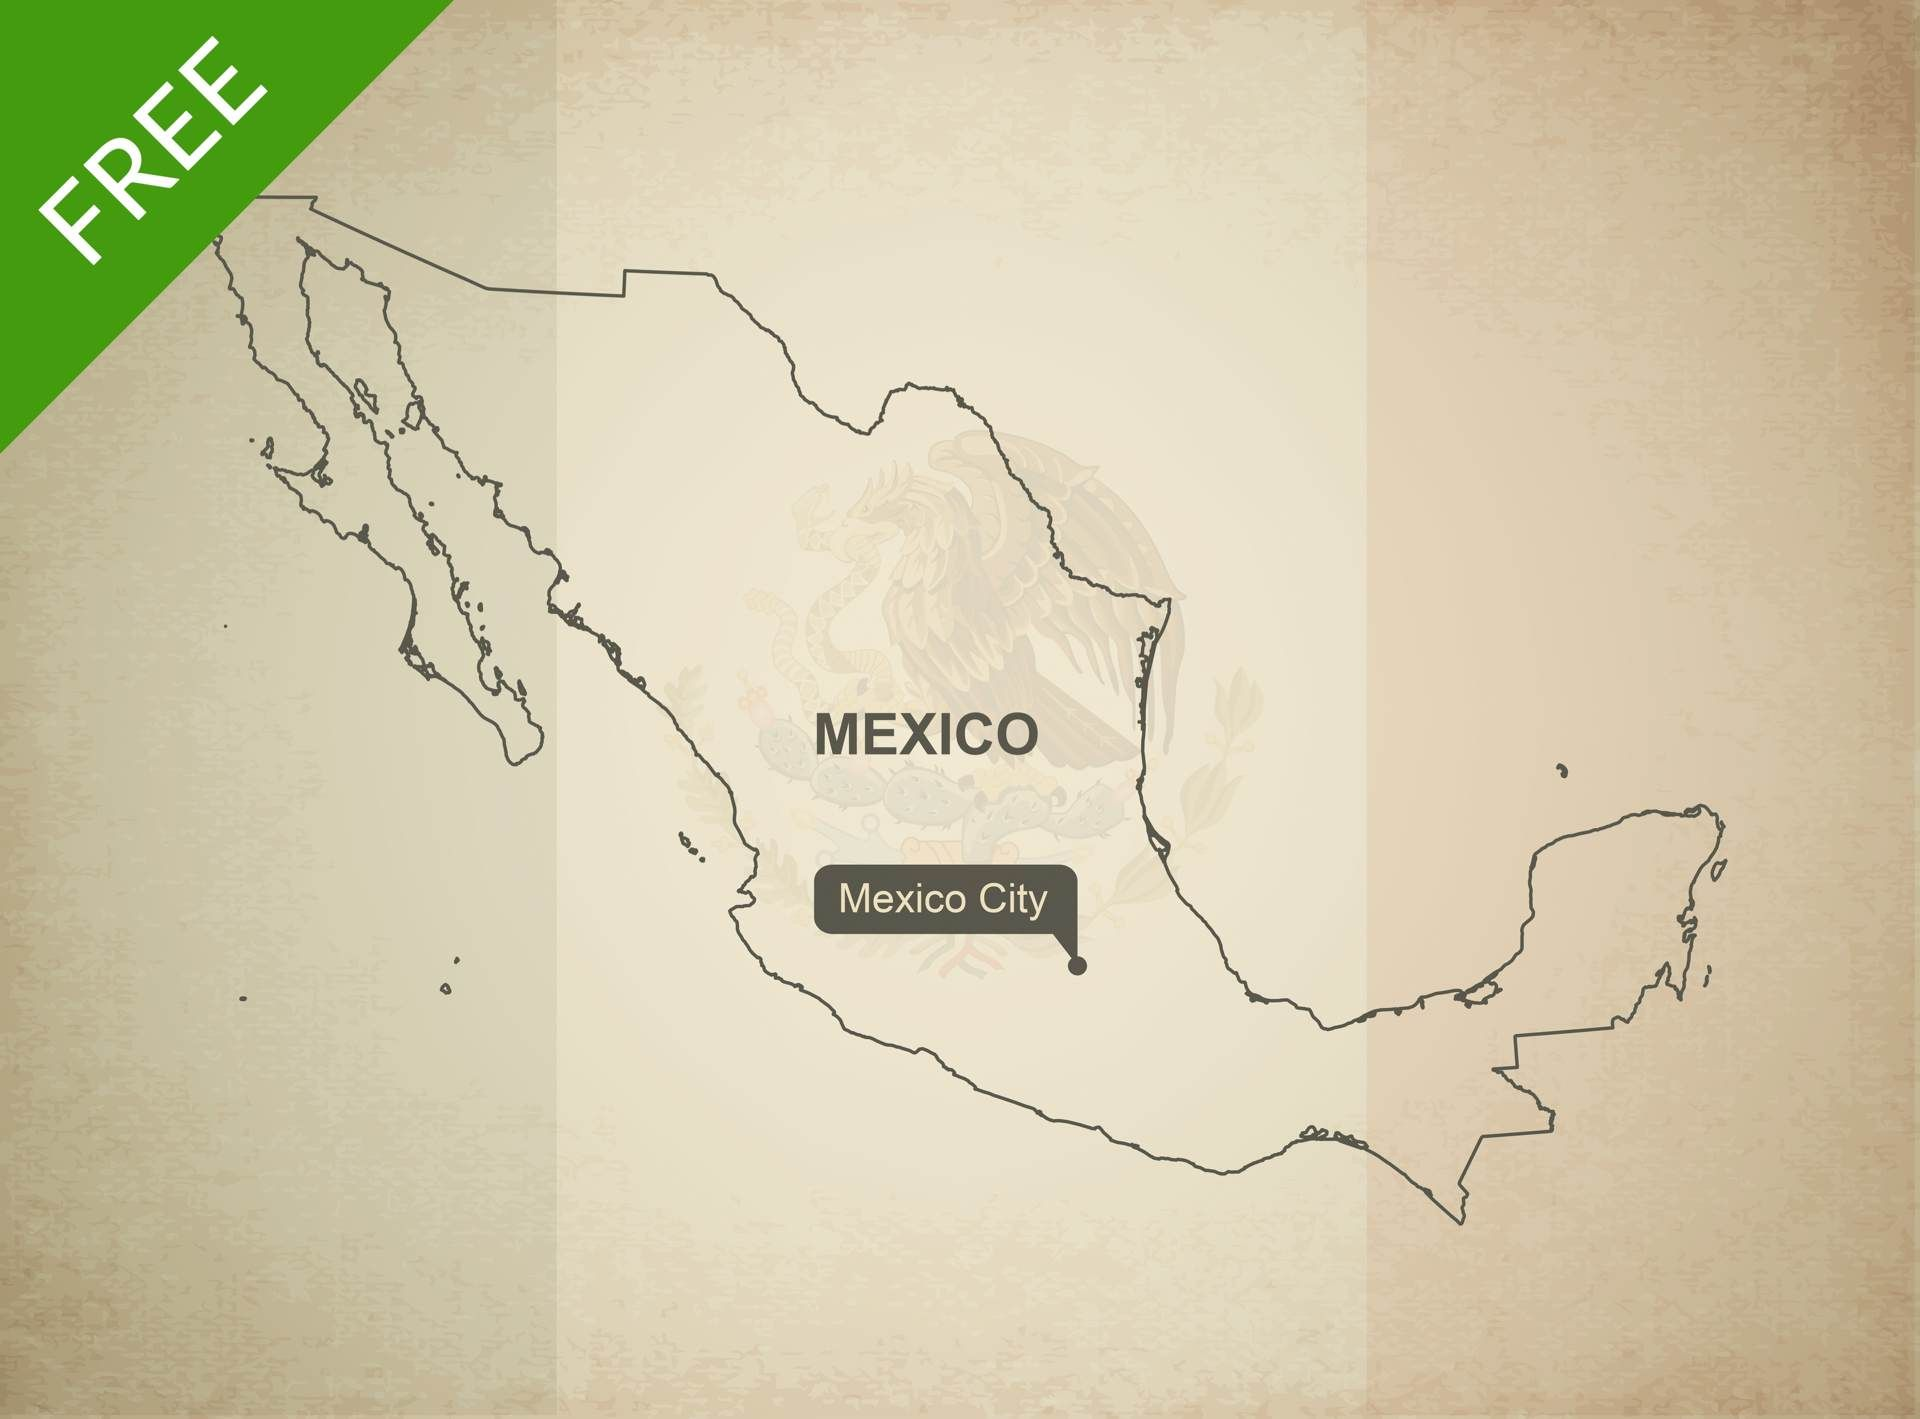 Free Vector Map Of Mexico Outline Vector Format - Georgia map vector free download